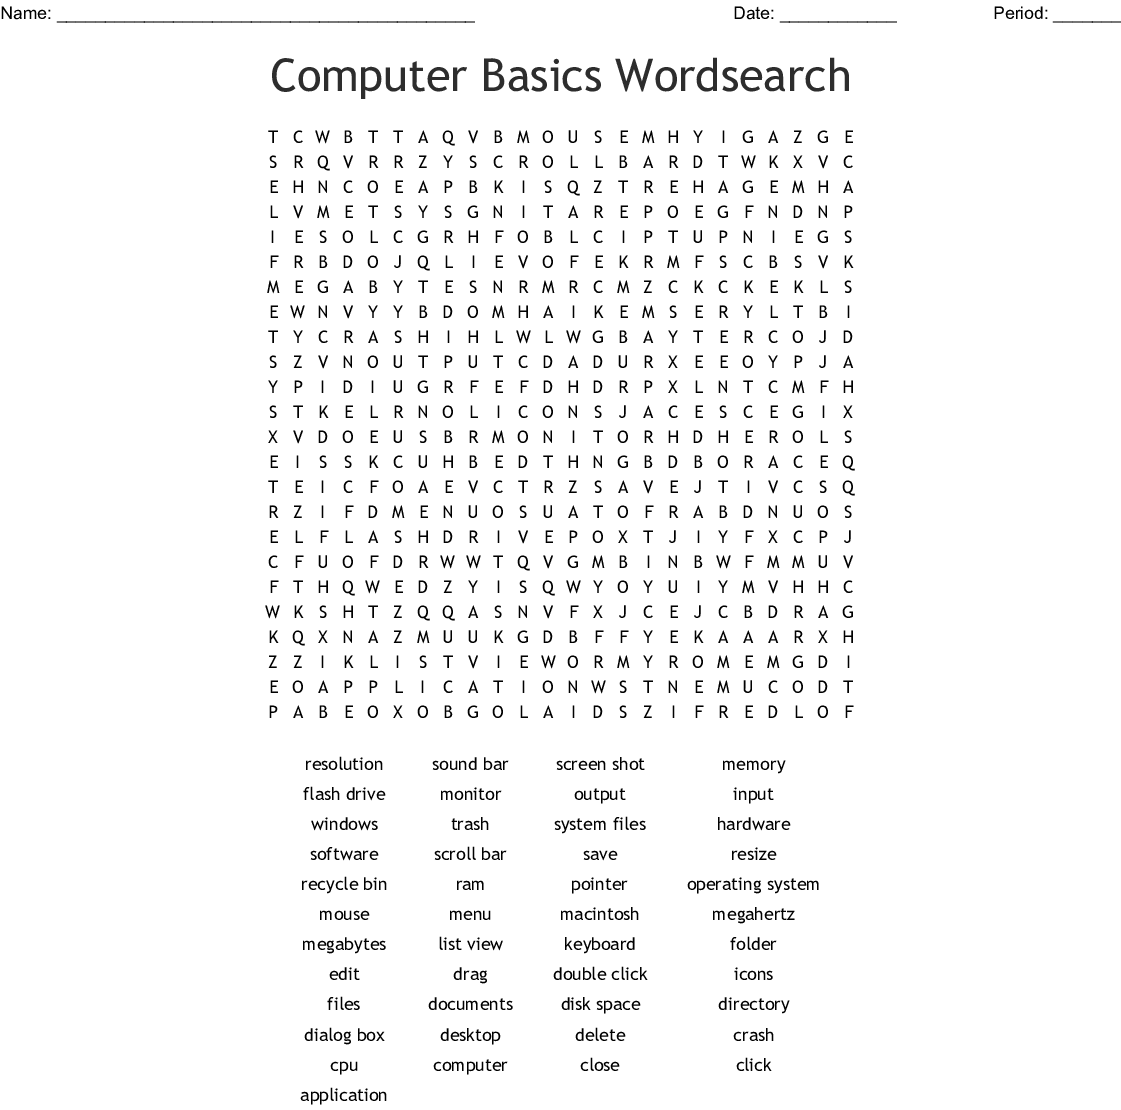 Computer Basics Wordsearch